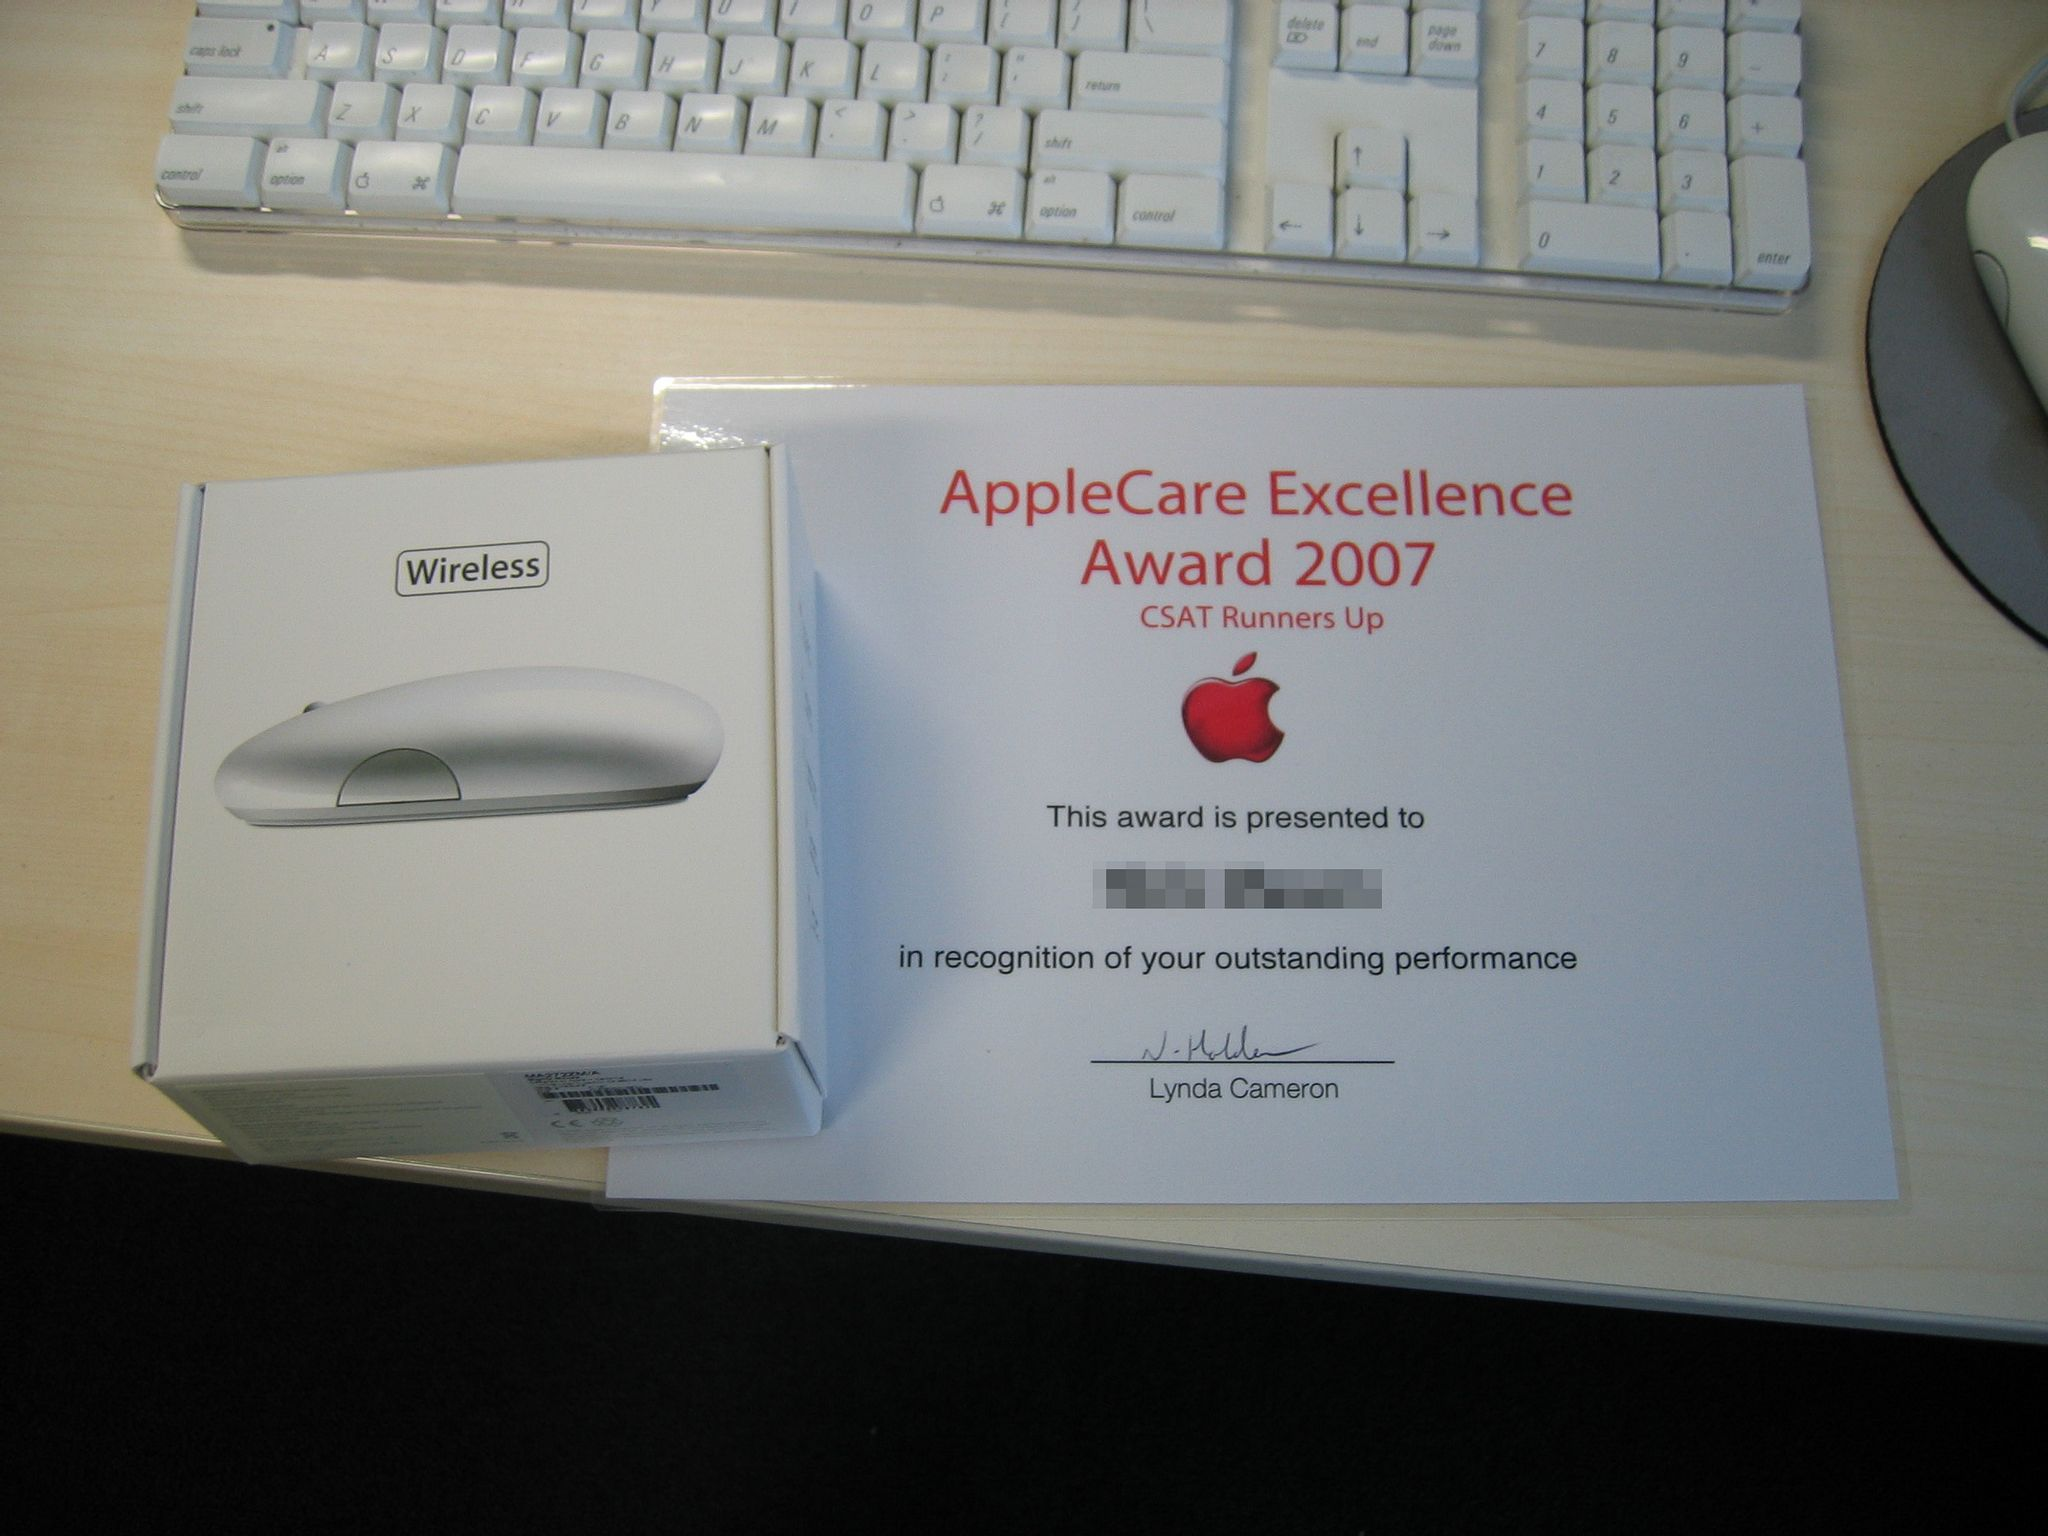 """A photo of the box of an Apple Wireless Mighty Mouse, alongside a certificate that says """"AppleCare Excellence Award 2007 - CSAT Runners Up""""."""